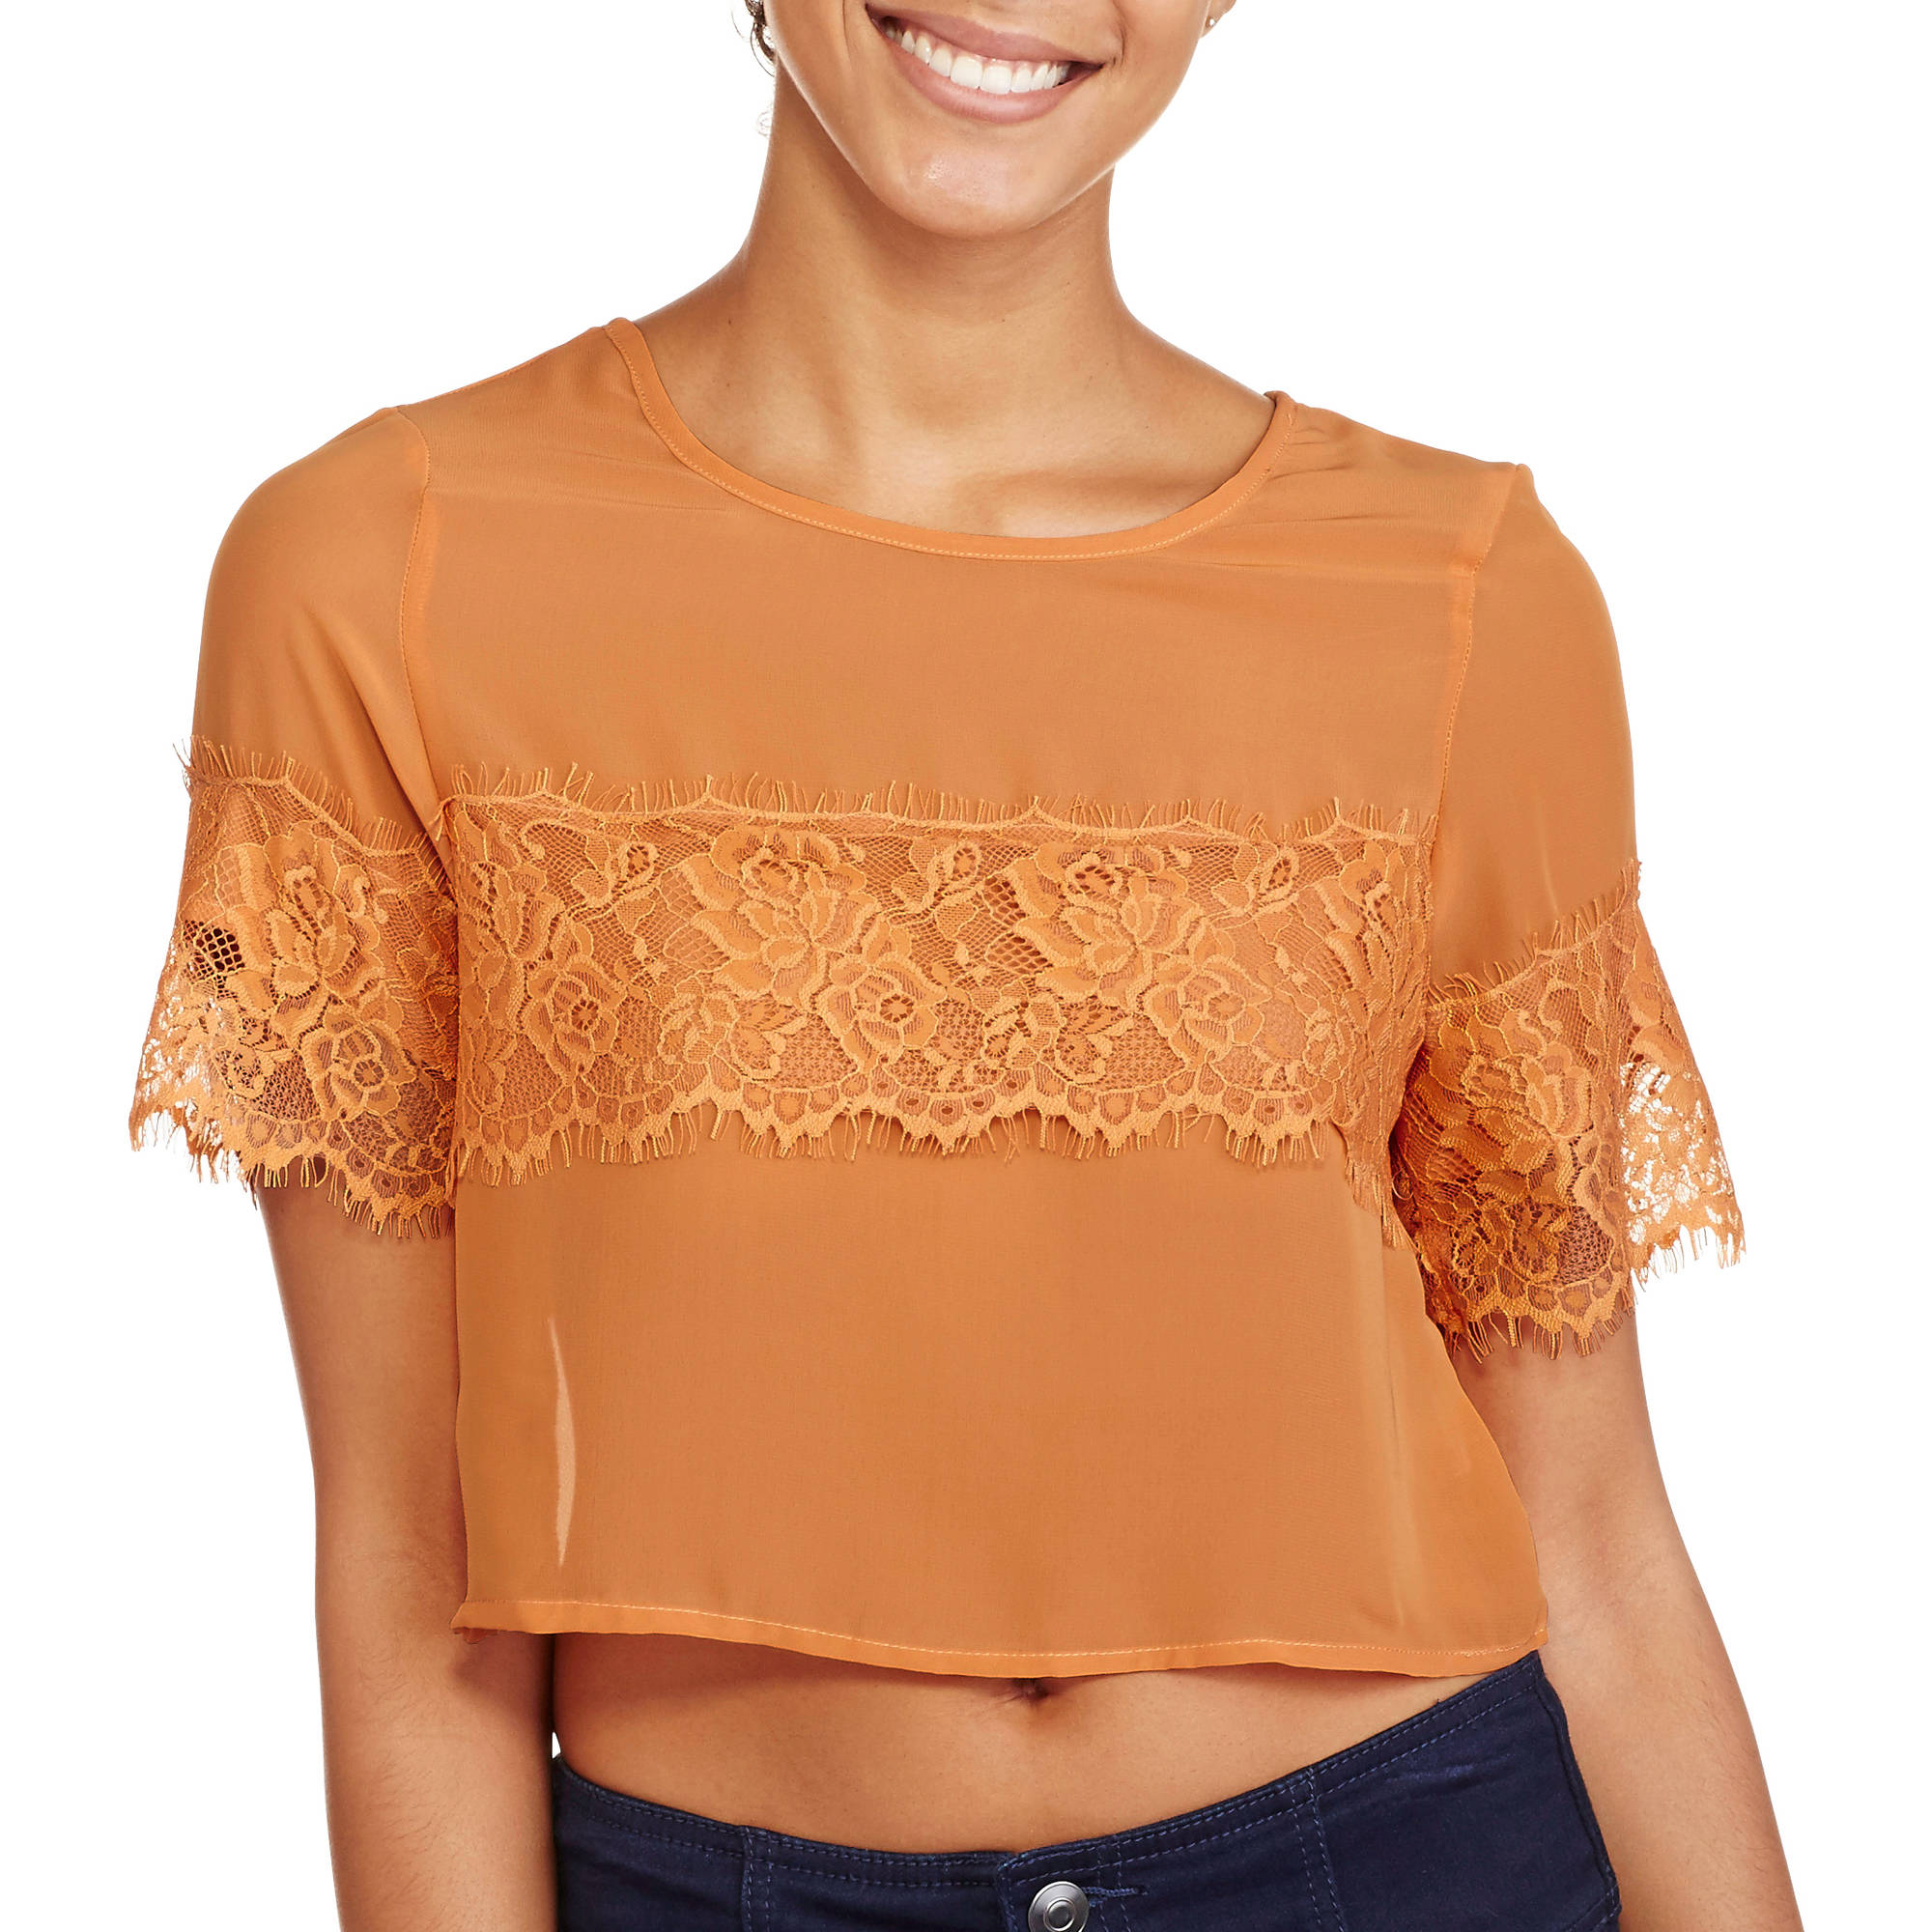 Ali & Kris Juniors' Short Sleeve Scoopneck Chiffon Crop Top